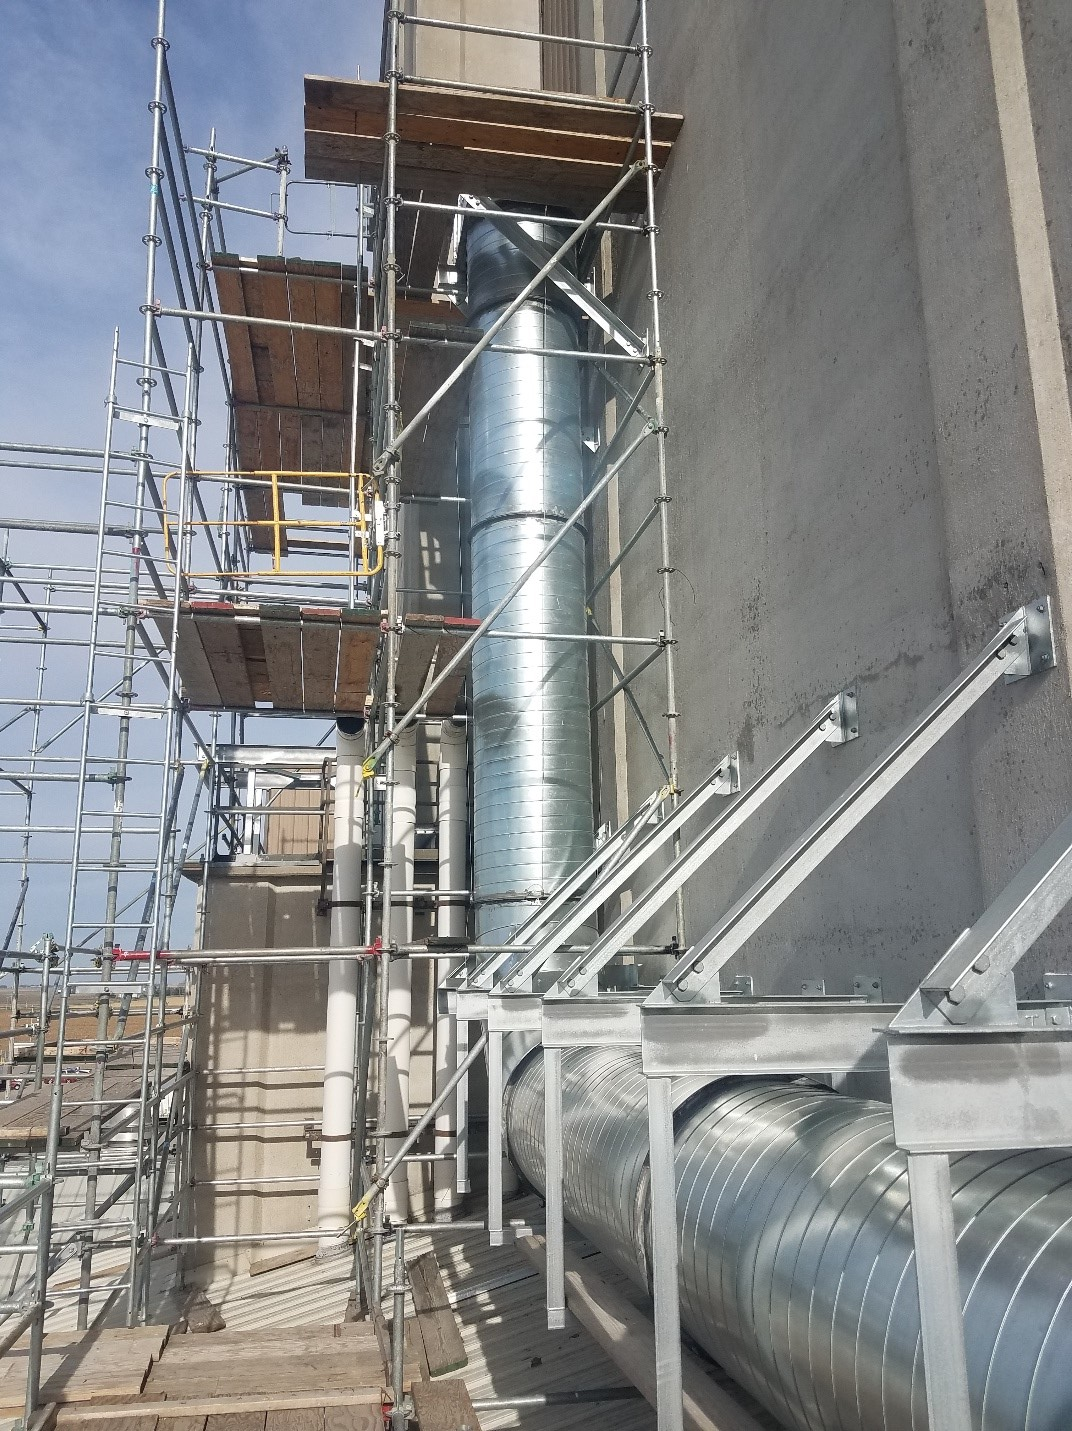 Completed commercial duct work with scaffolding around it